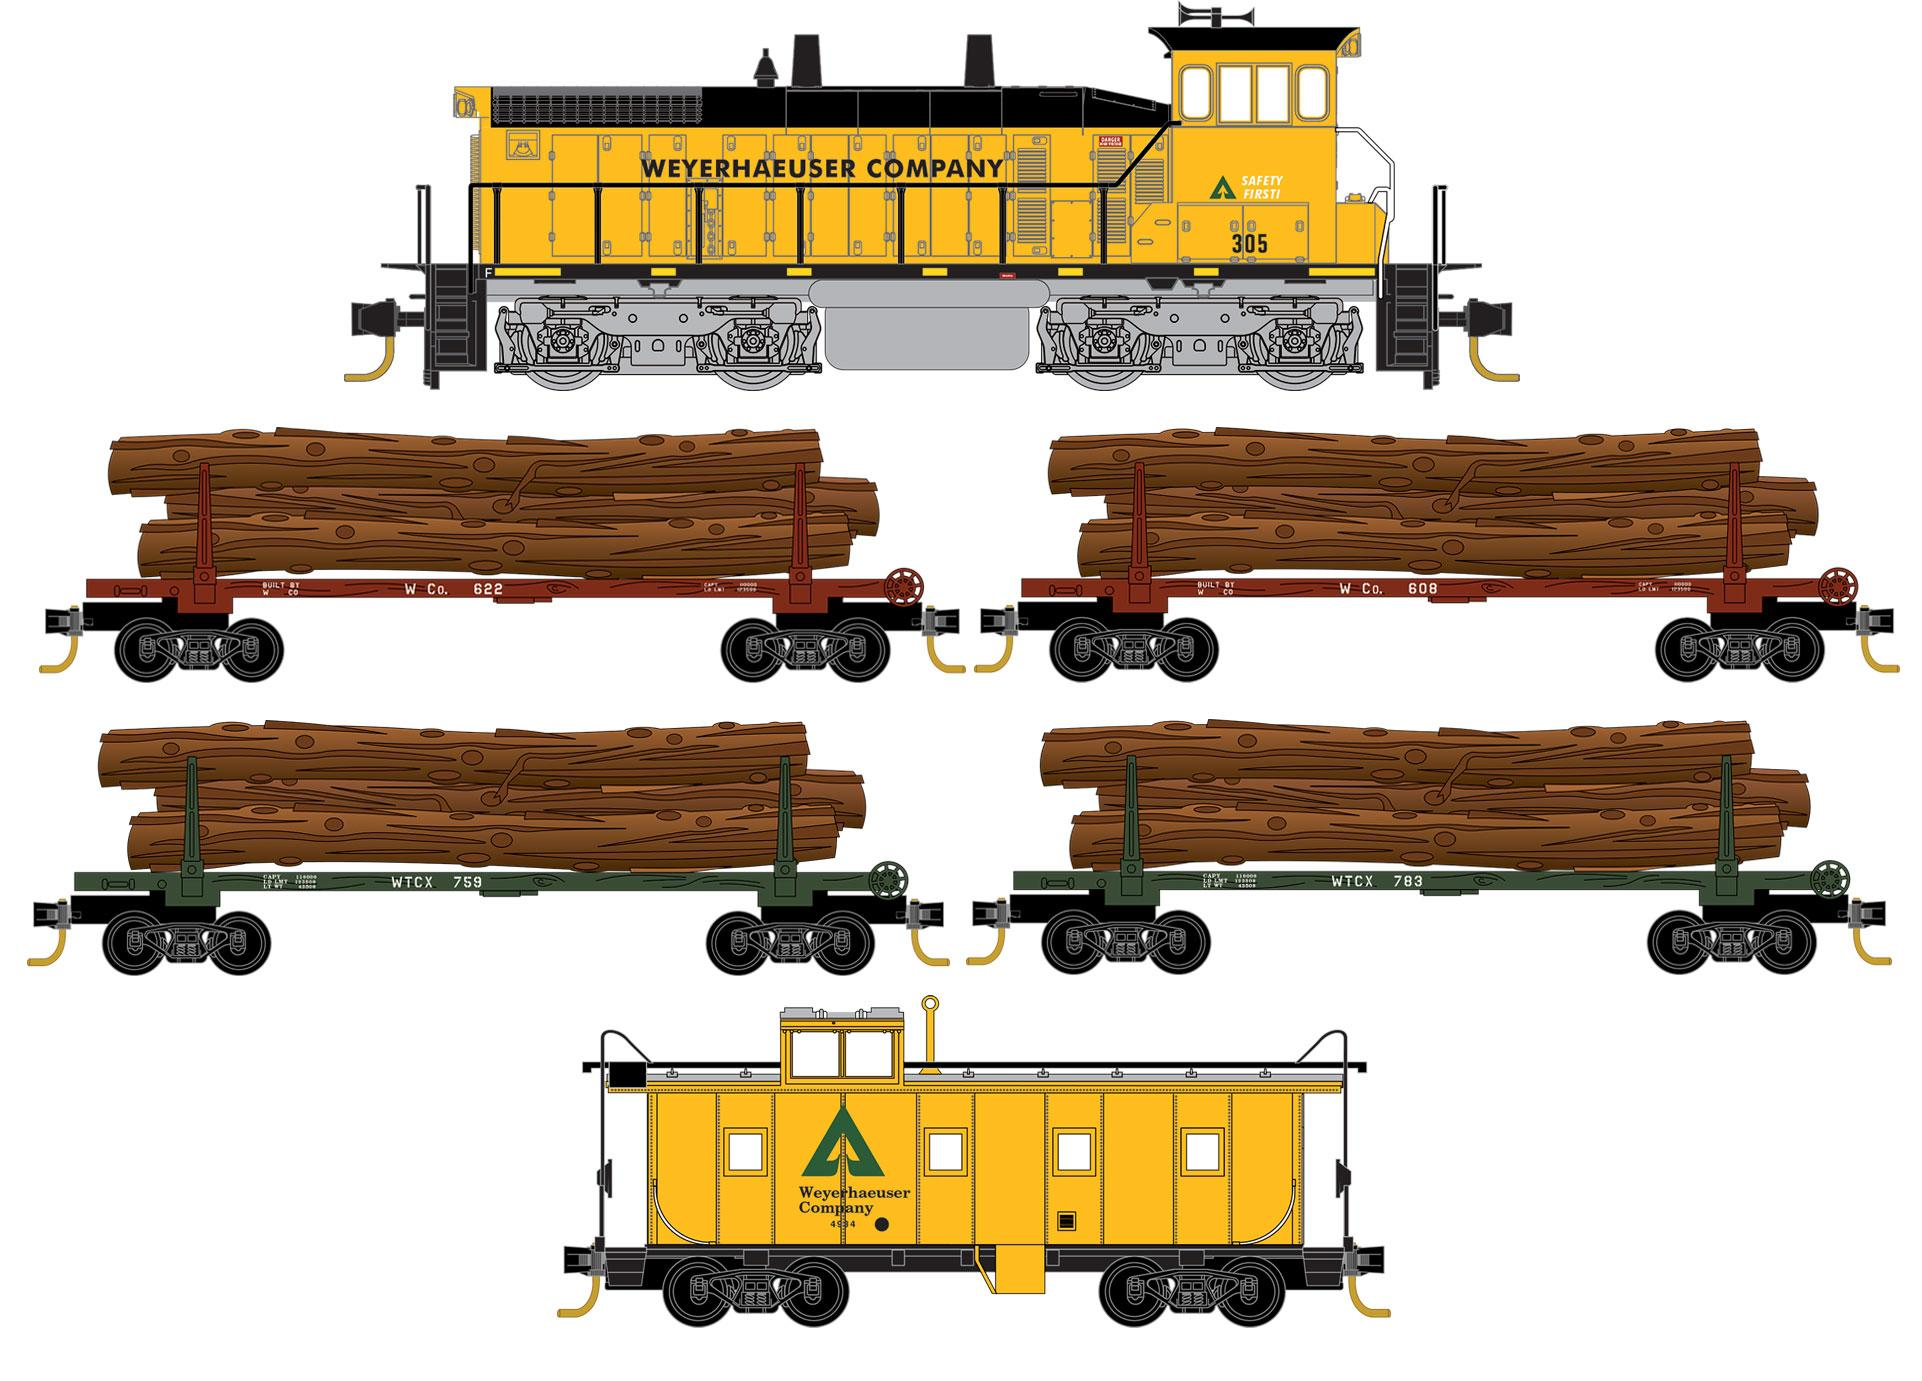 1917 train car clipart clipart images gallery for free.